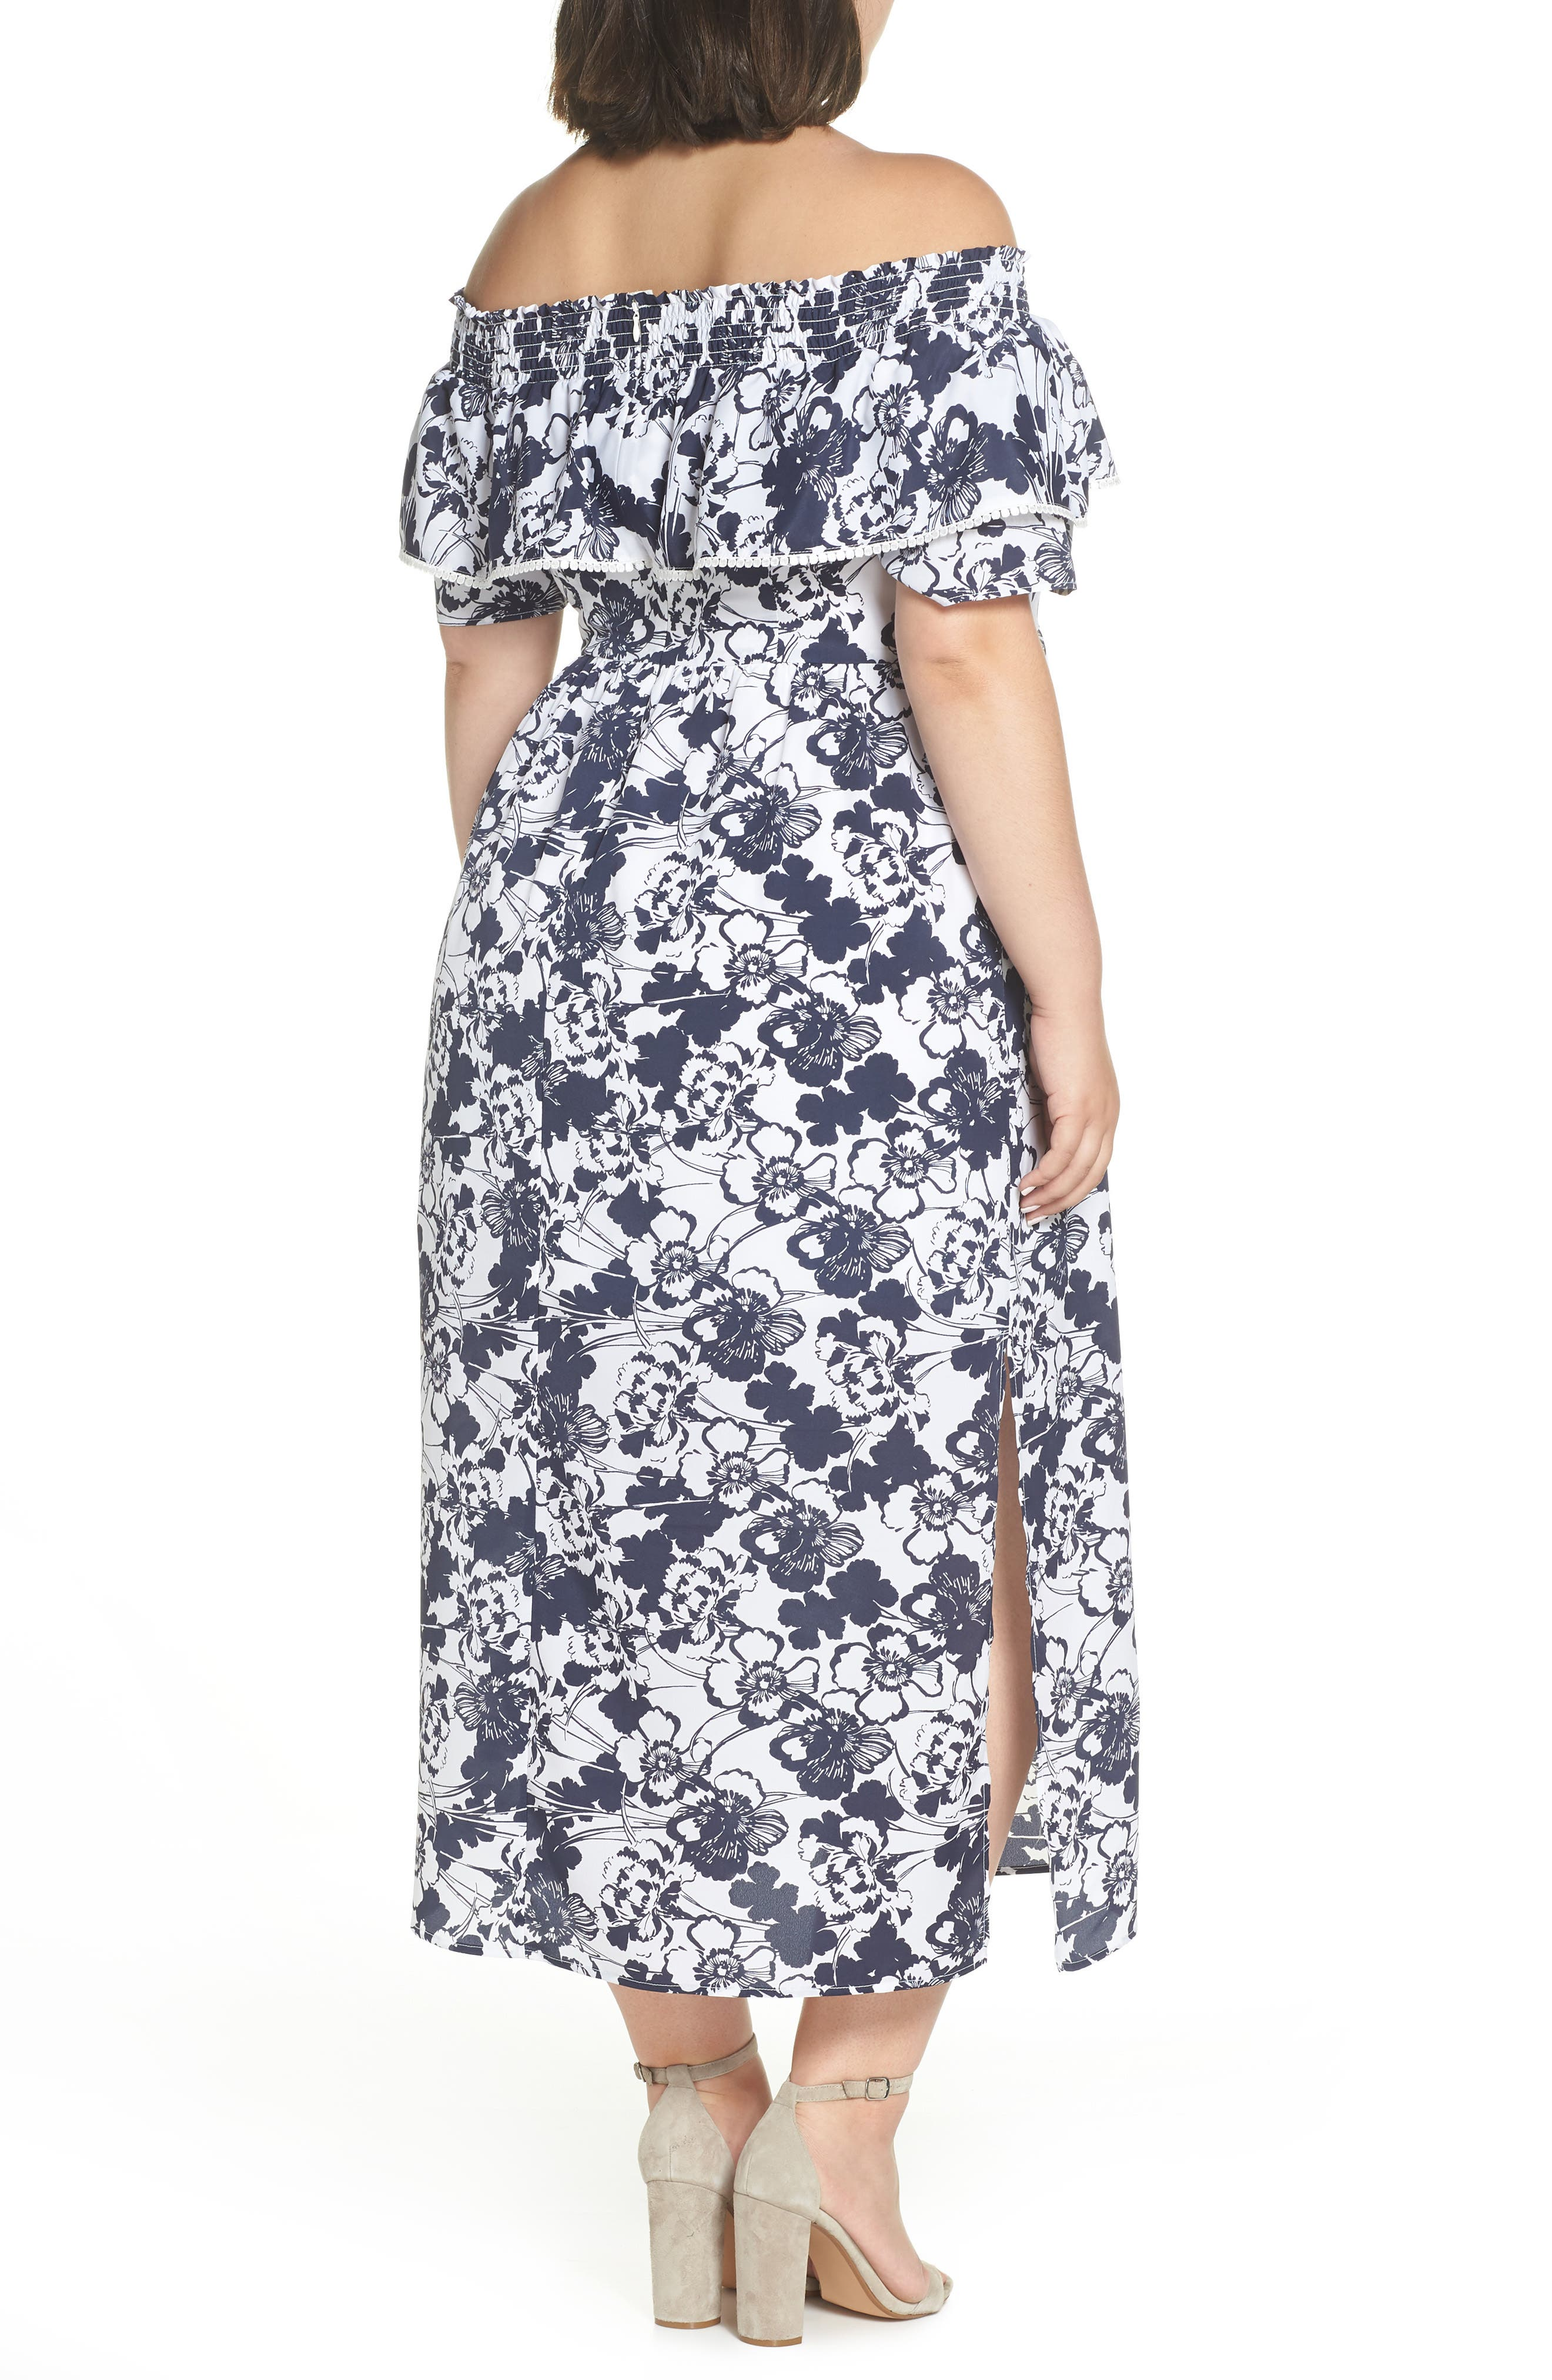 Off the Shoulder Ruffle Maxi Dress,                             Alternate thumbnail 9, color,                             Navy Ivory Floral Print